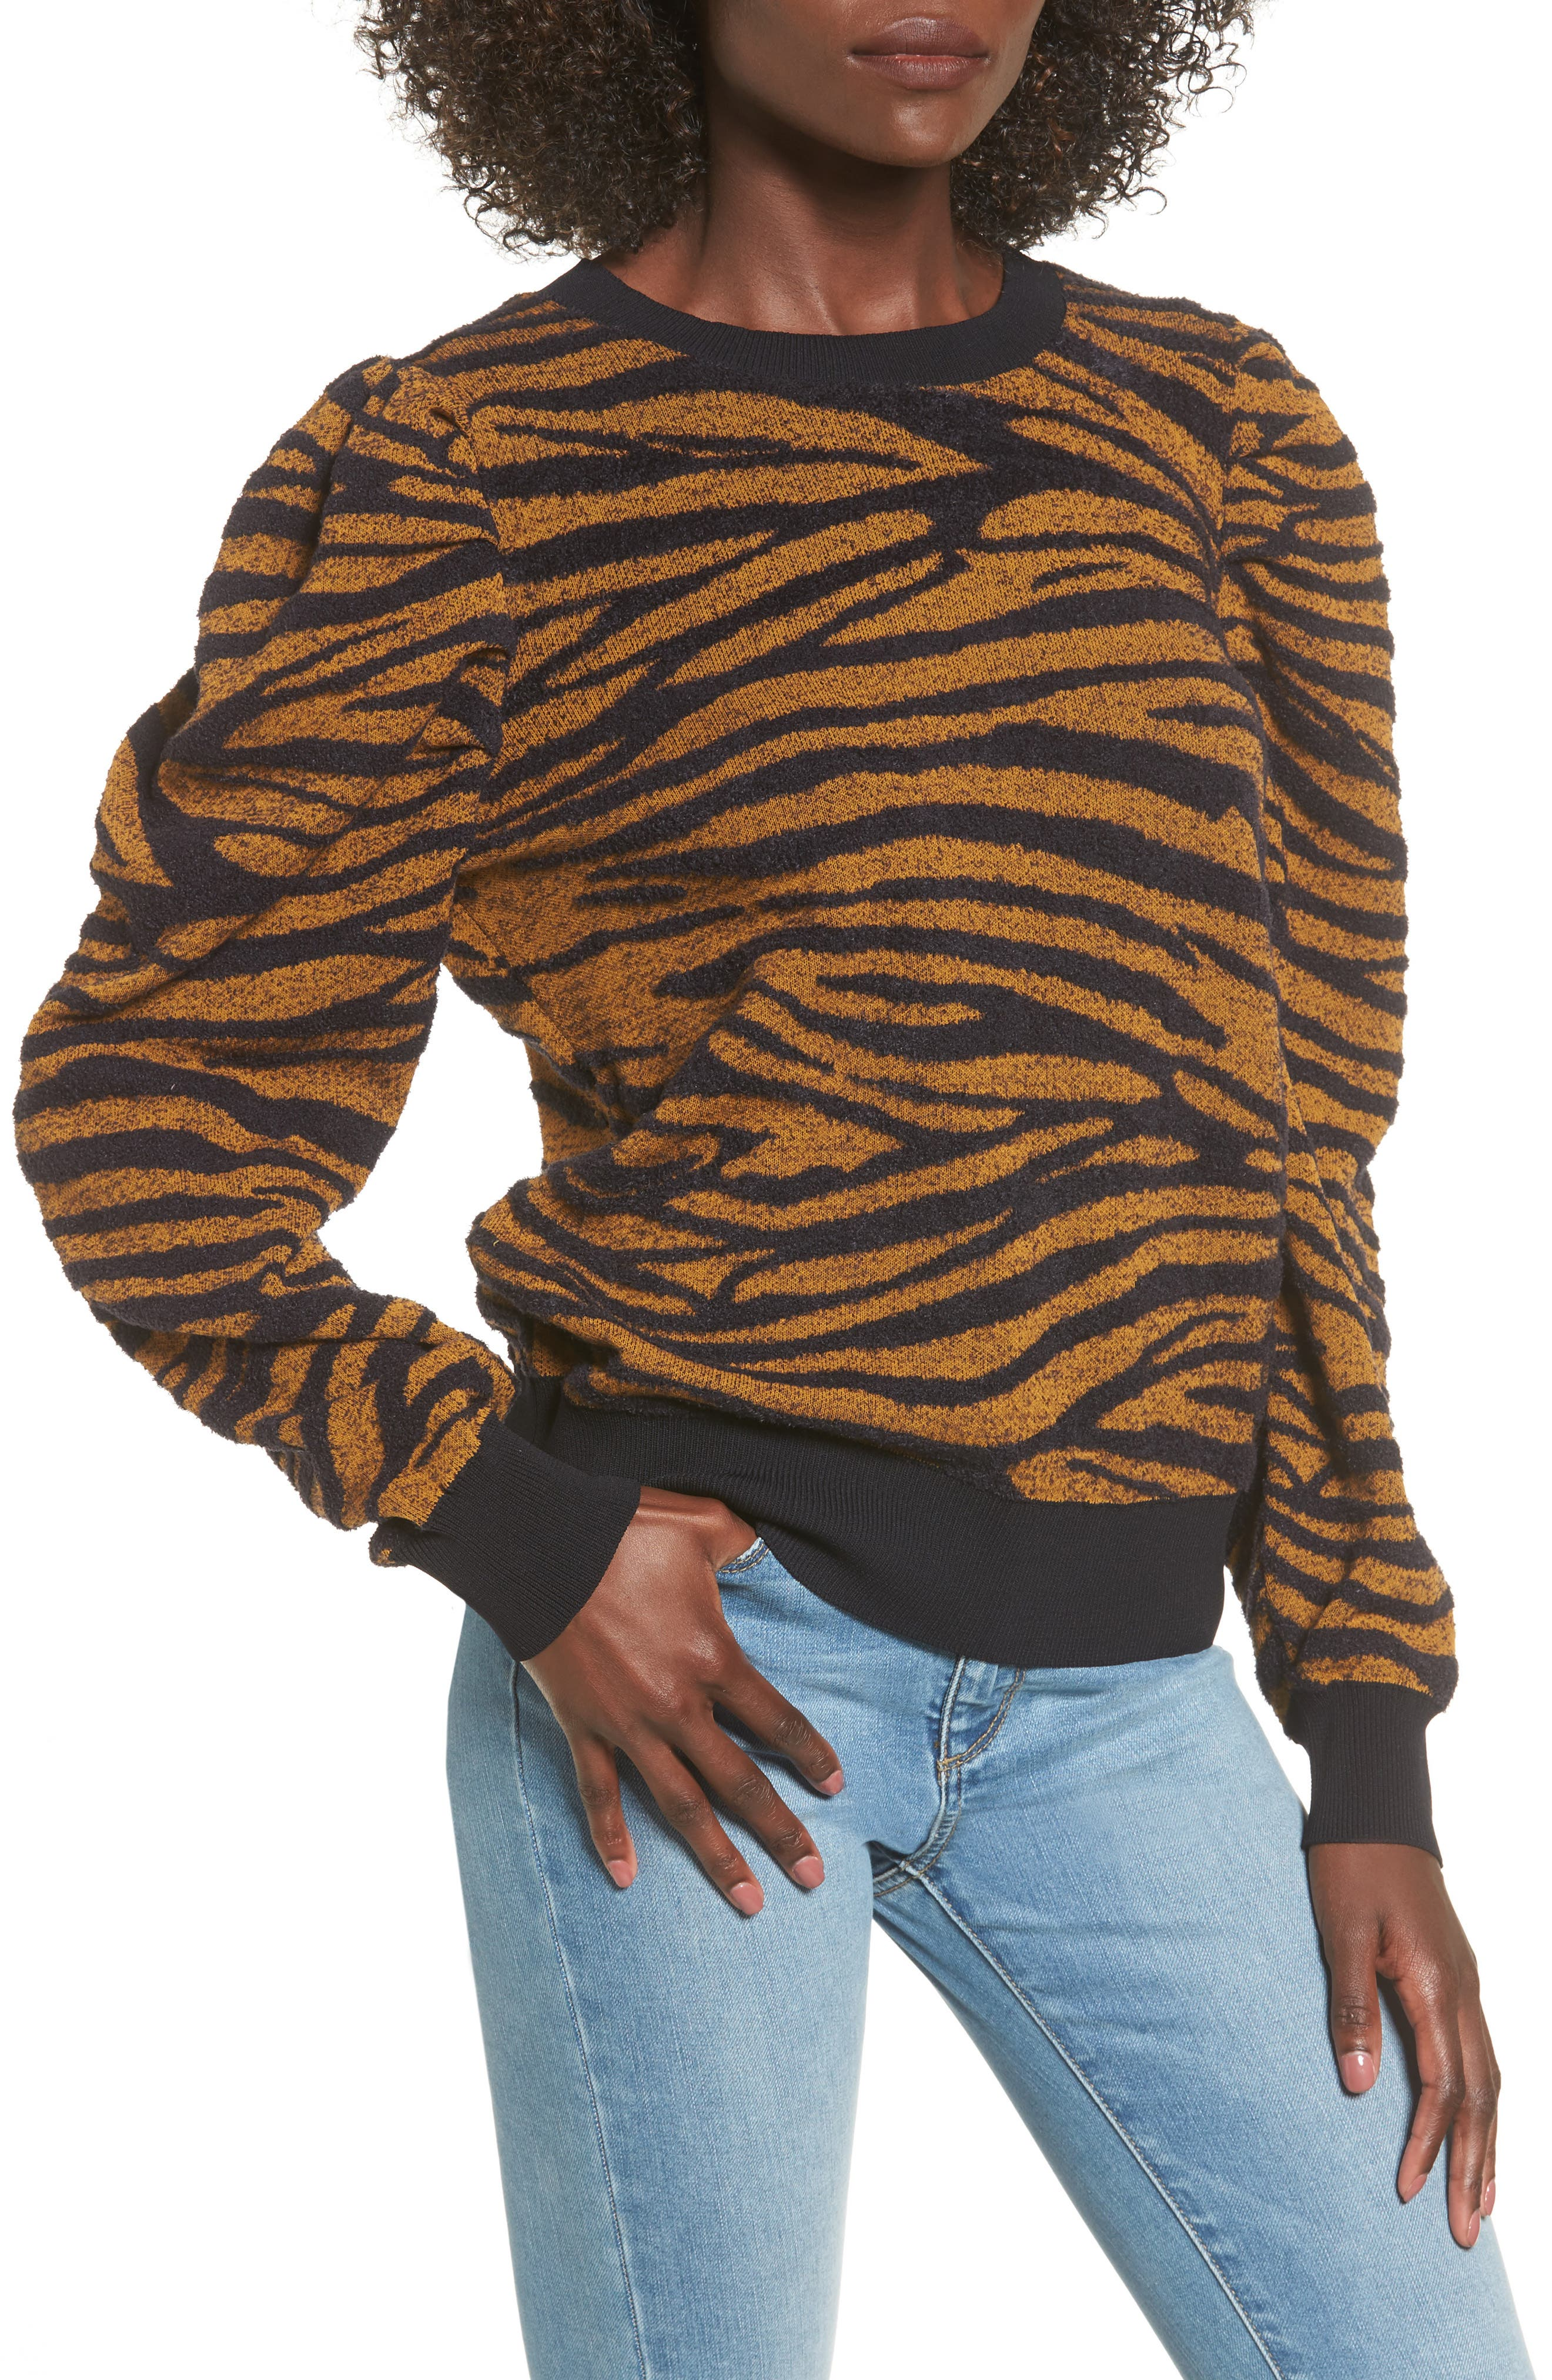 Puff Sleeve Sweater,                         Main,                         color, Brown Buckthorn Abstract Zebra